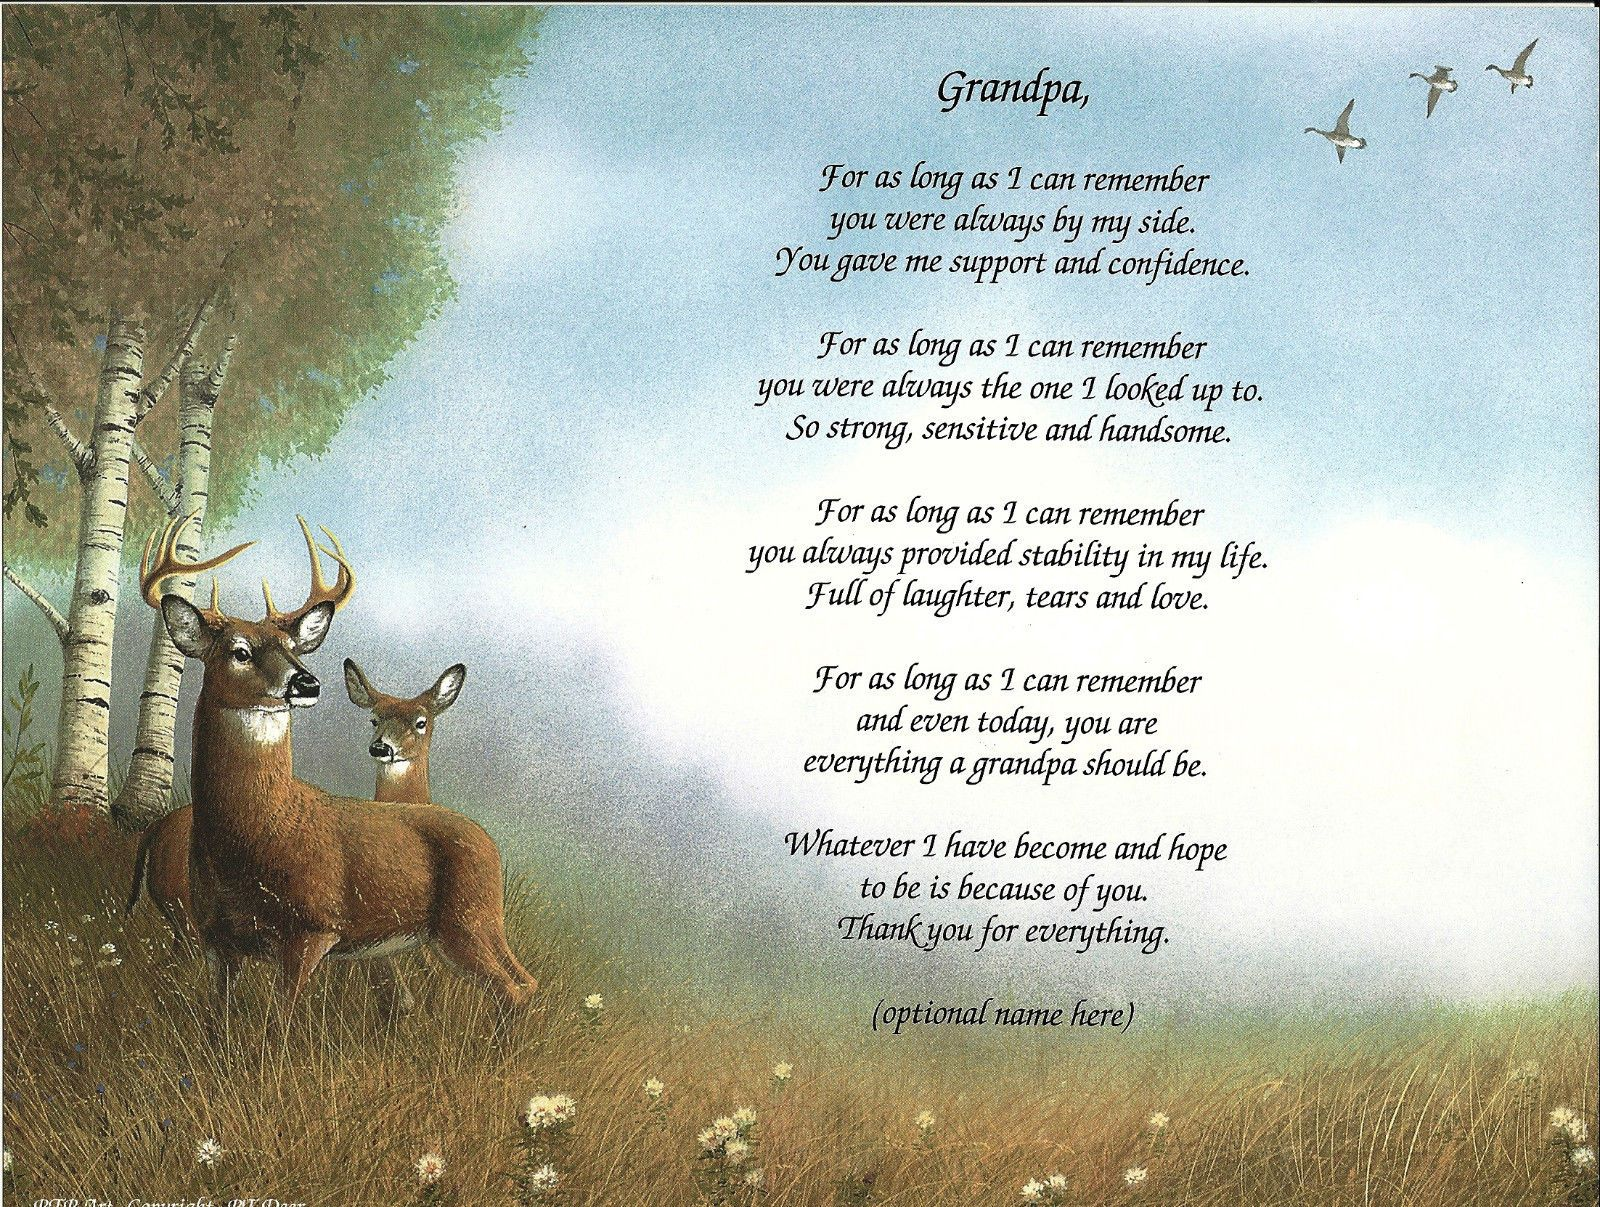 Grandparents grandma grandpa love you blessings god above for Poems about fishing in heaven